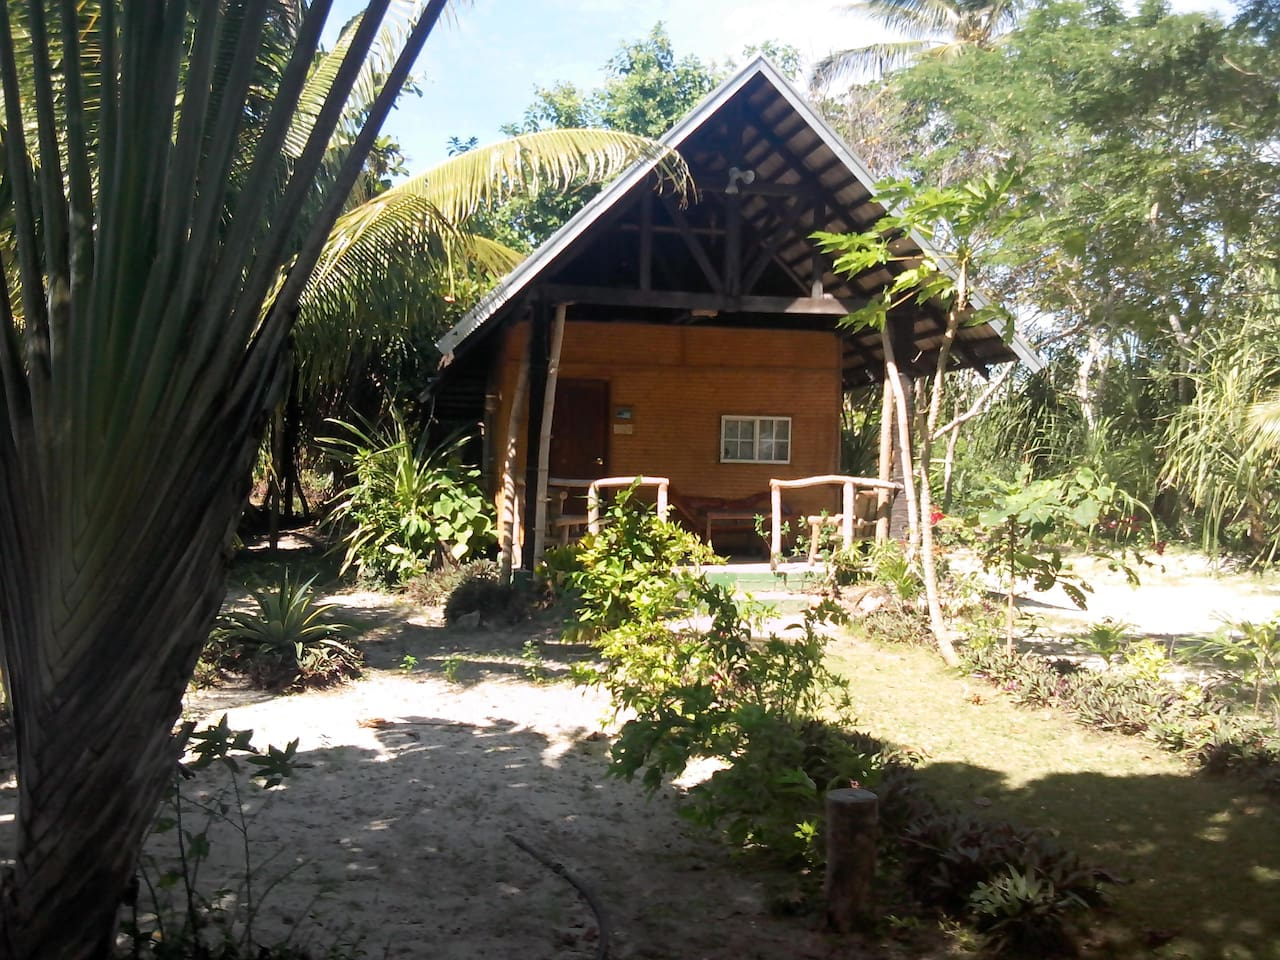 Native cottage near the white sand beach. Ideal for lovers who seeks the sounds of nature.